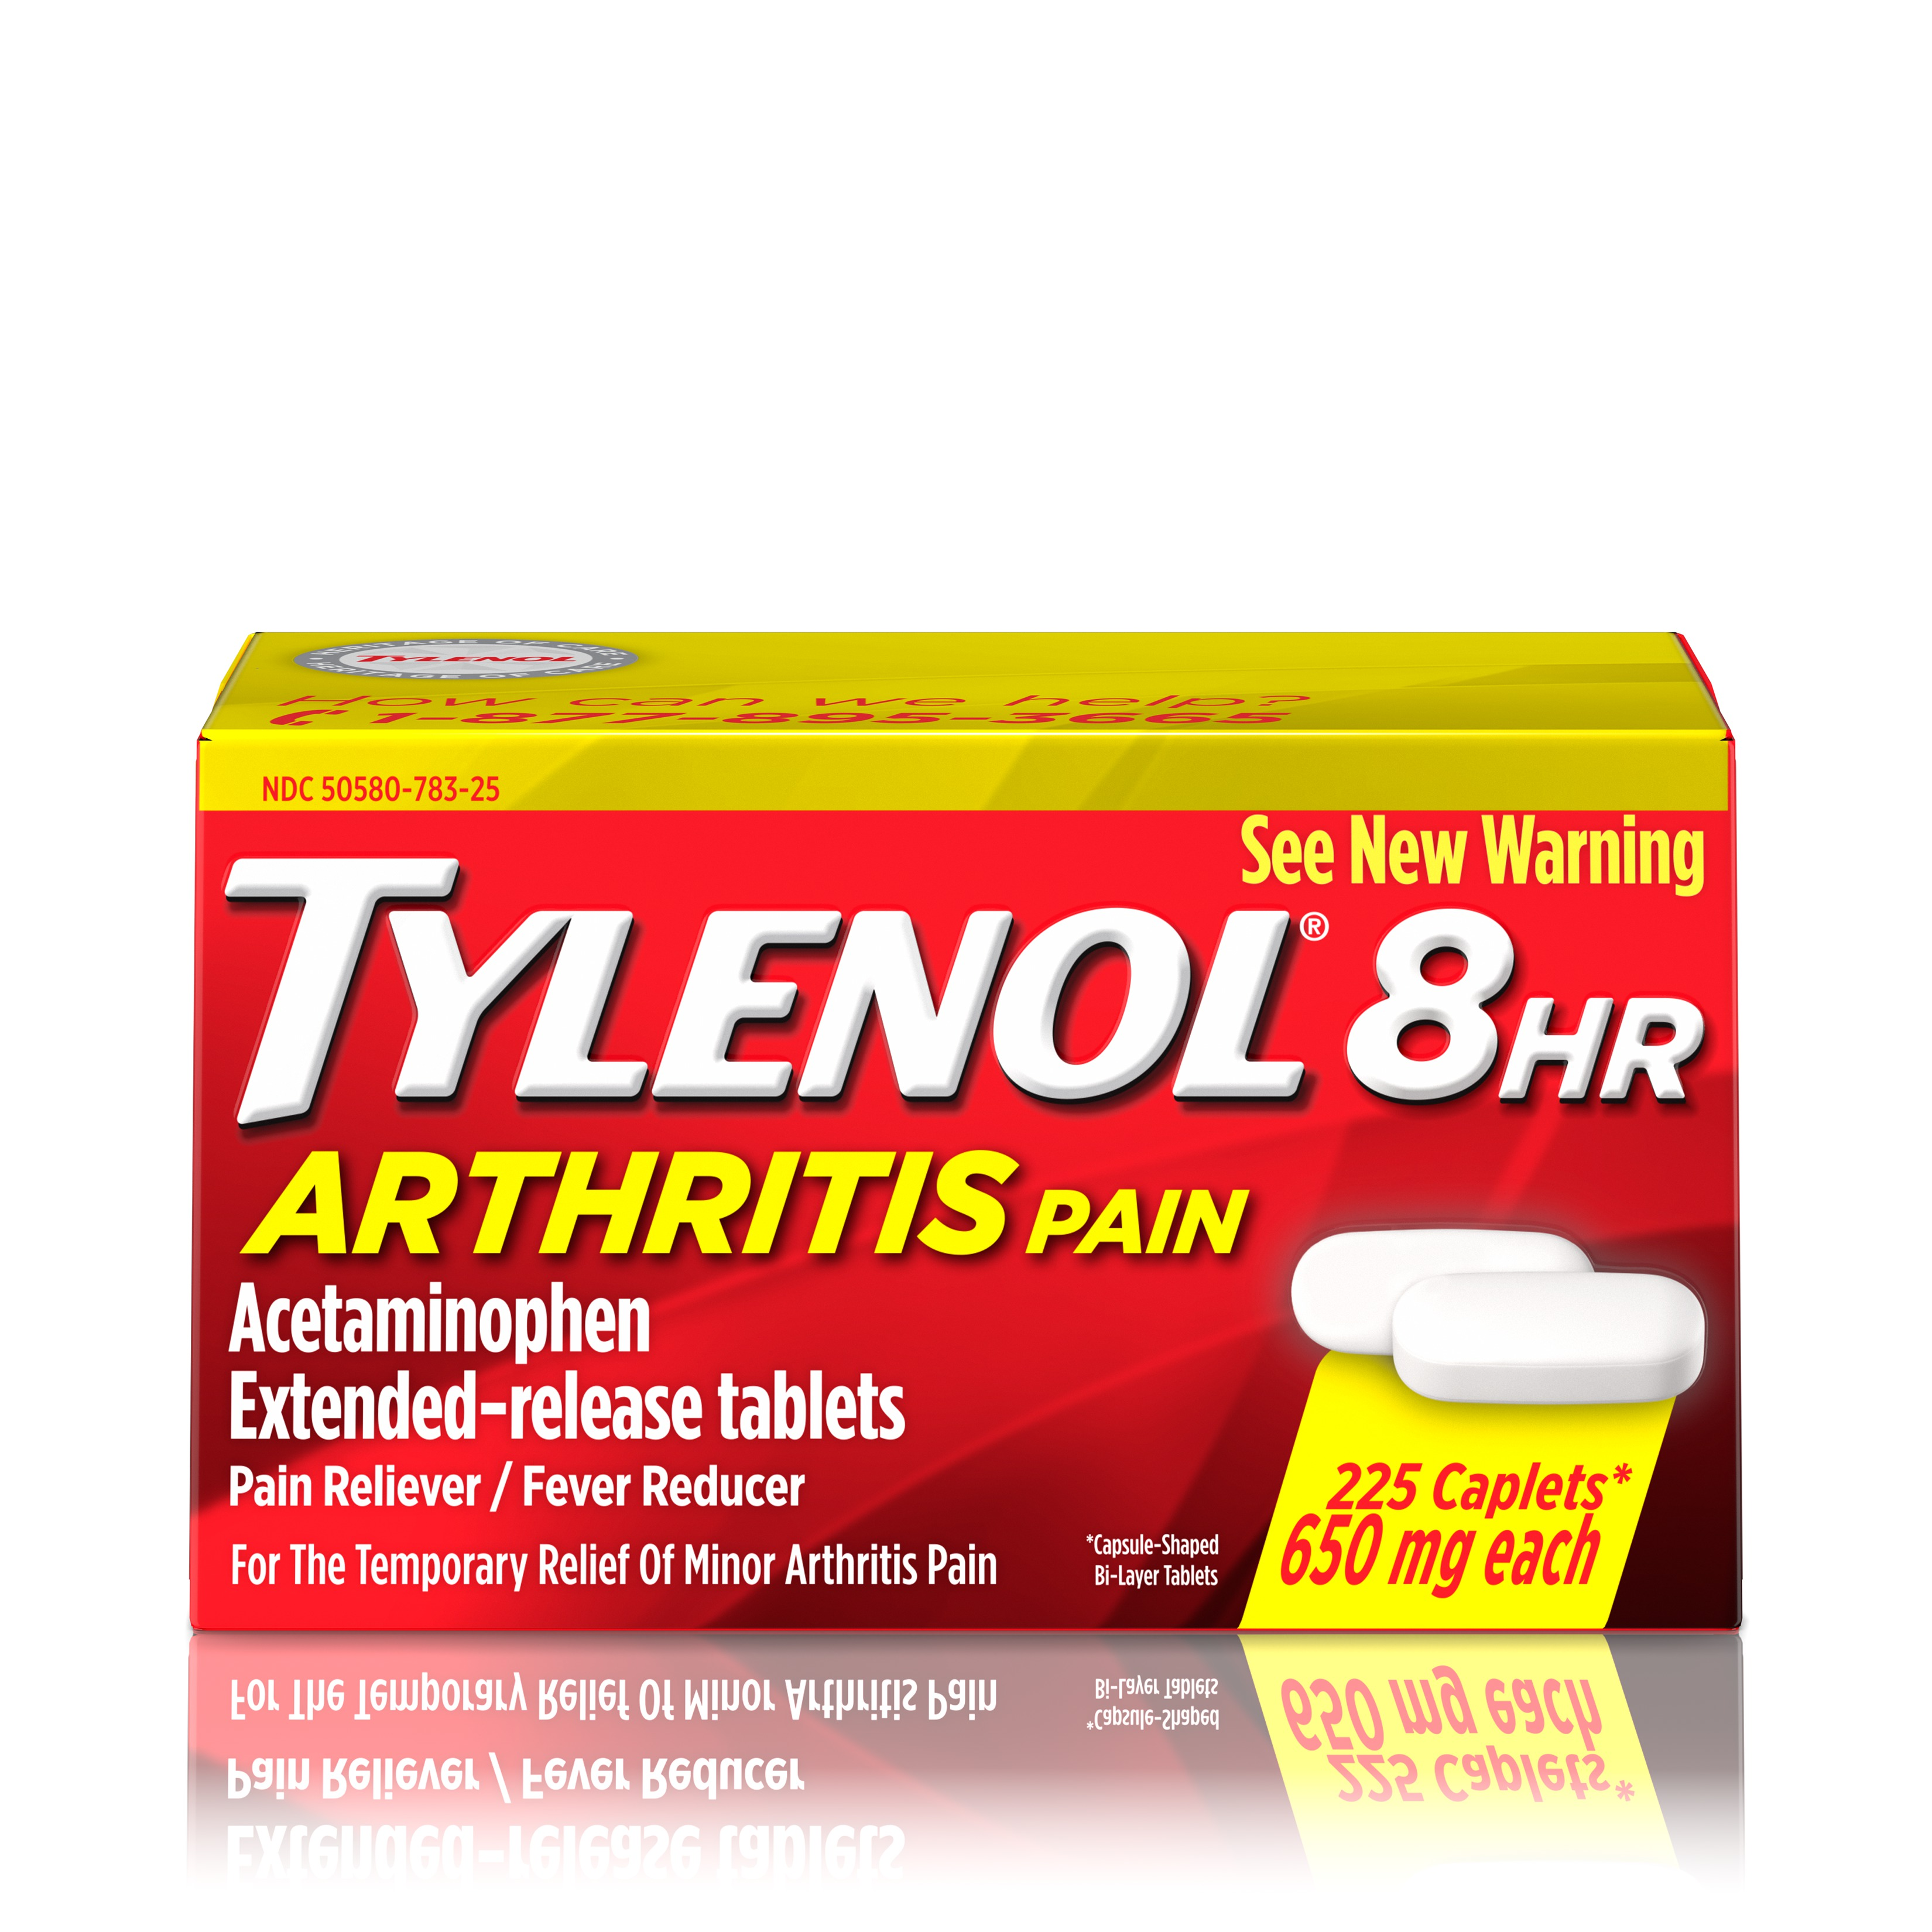 TYLENOL® 8 HR Arthritis Pain Extended Release Caplets, Pain Reliever, 650 mg, 225 ct.